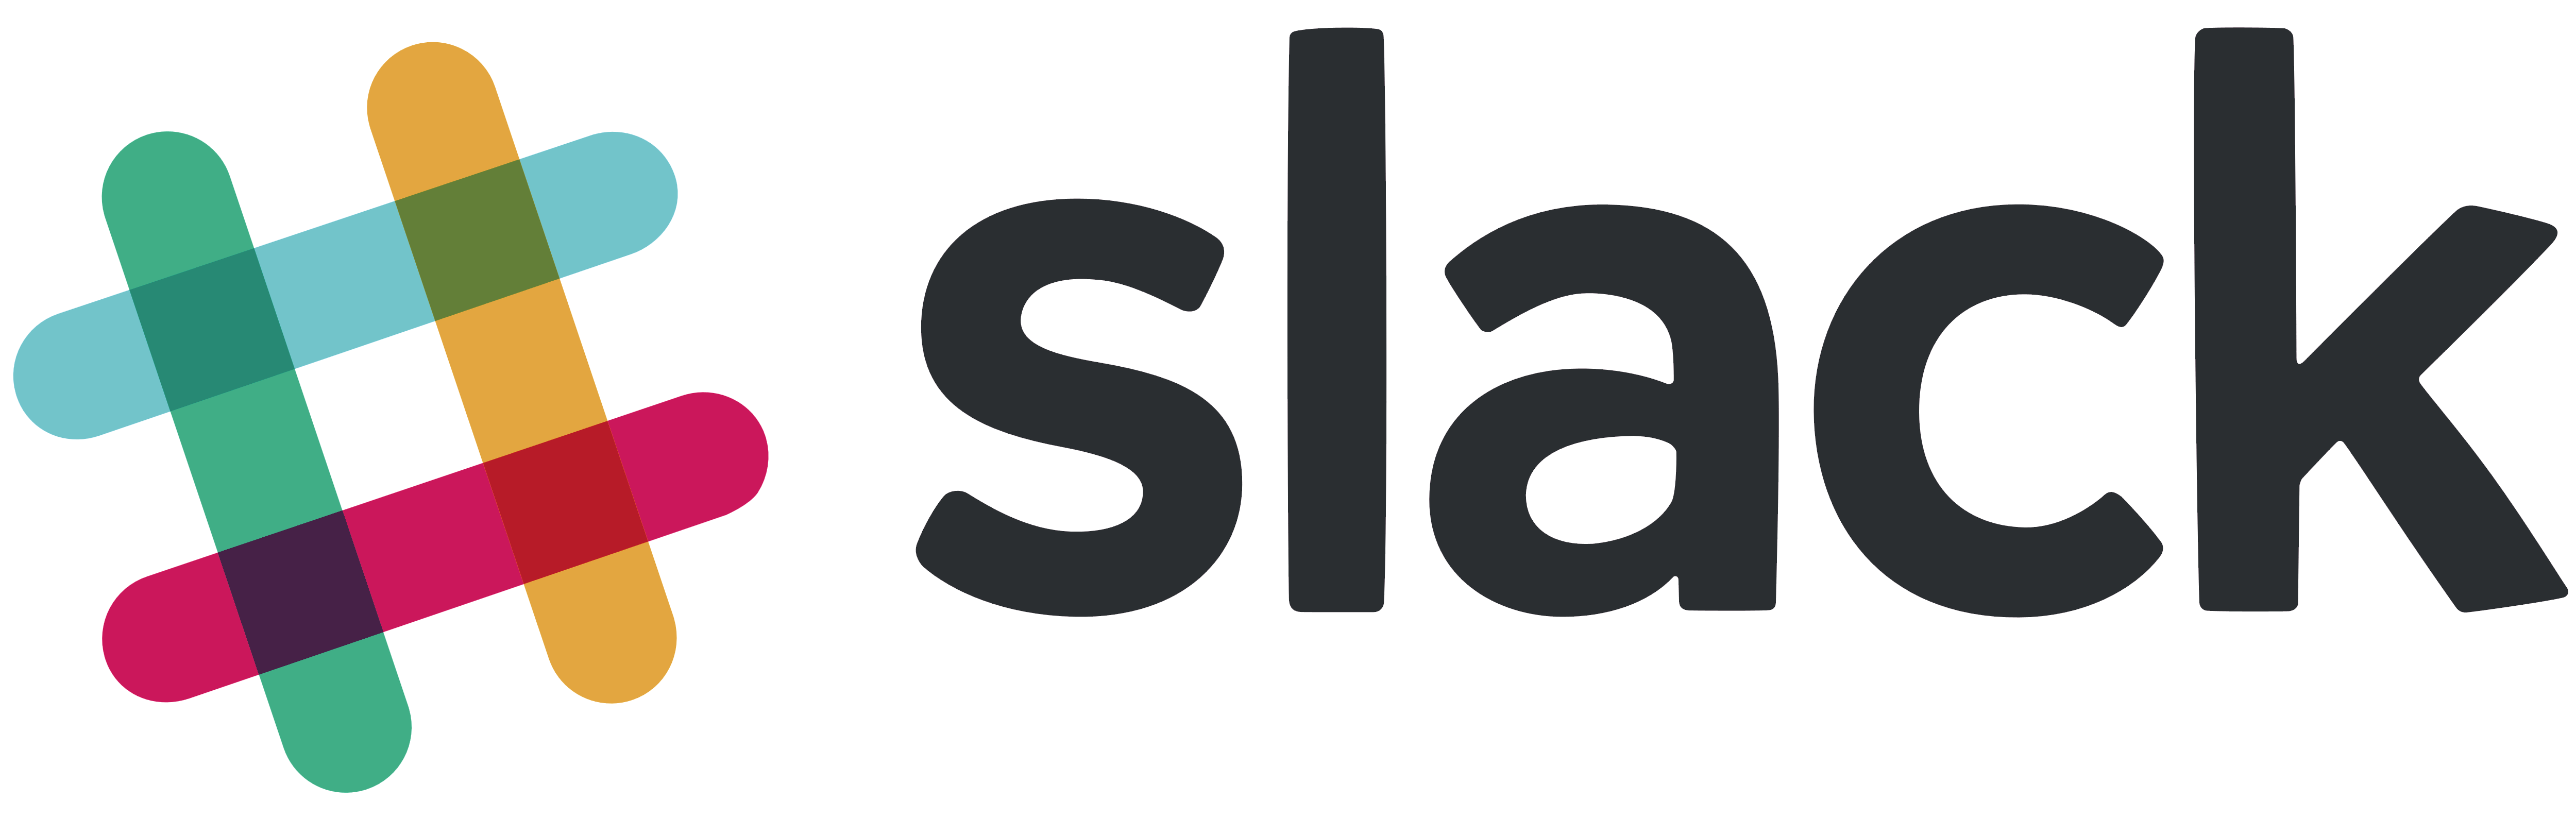 Hire workers from Slack - projects to hire